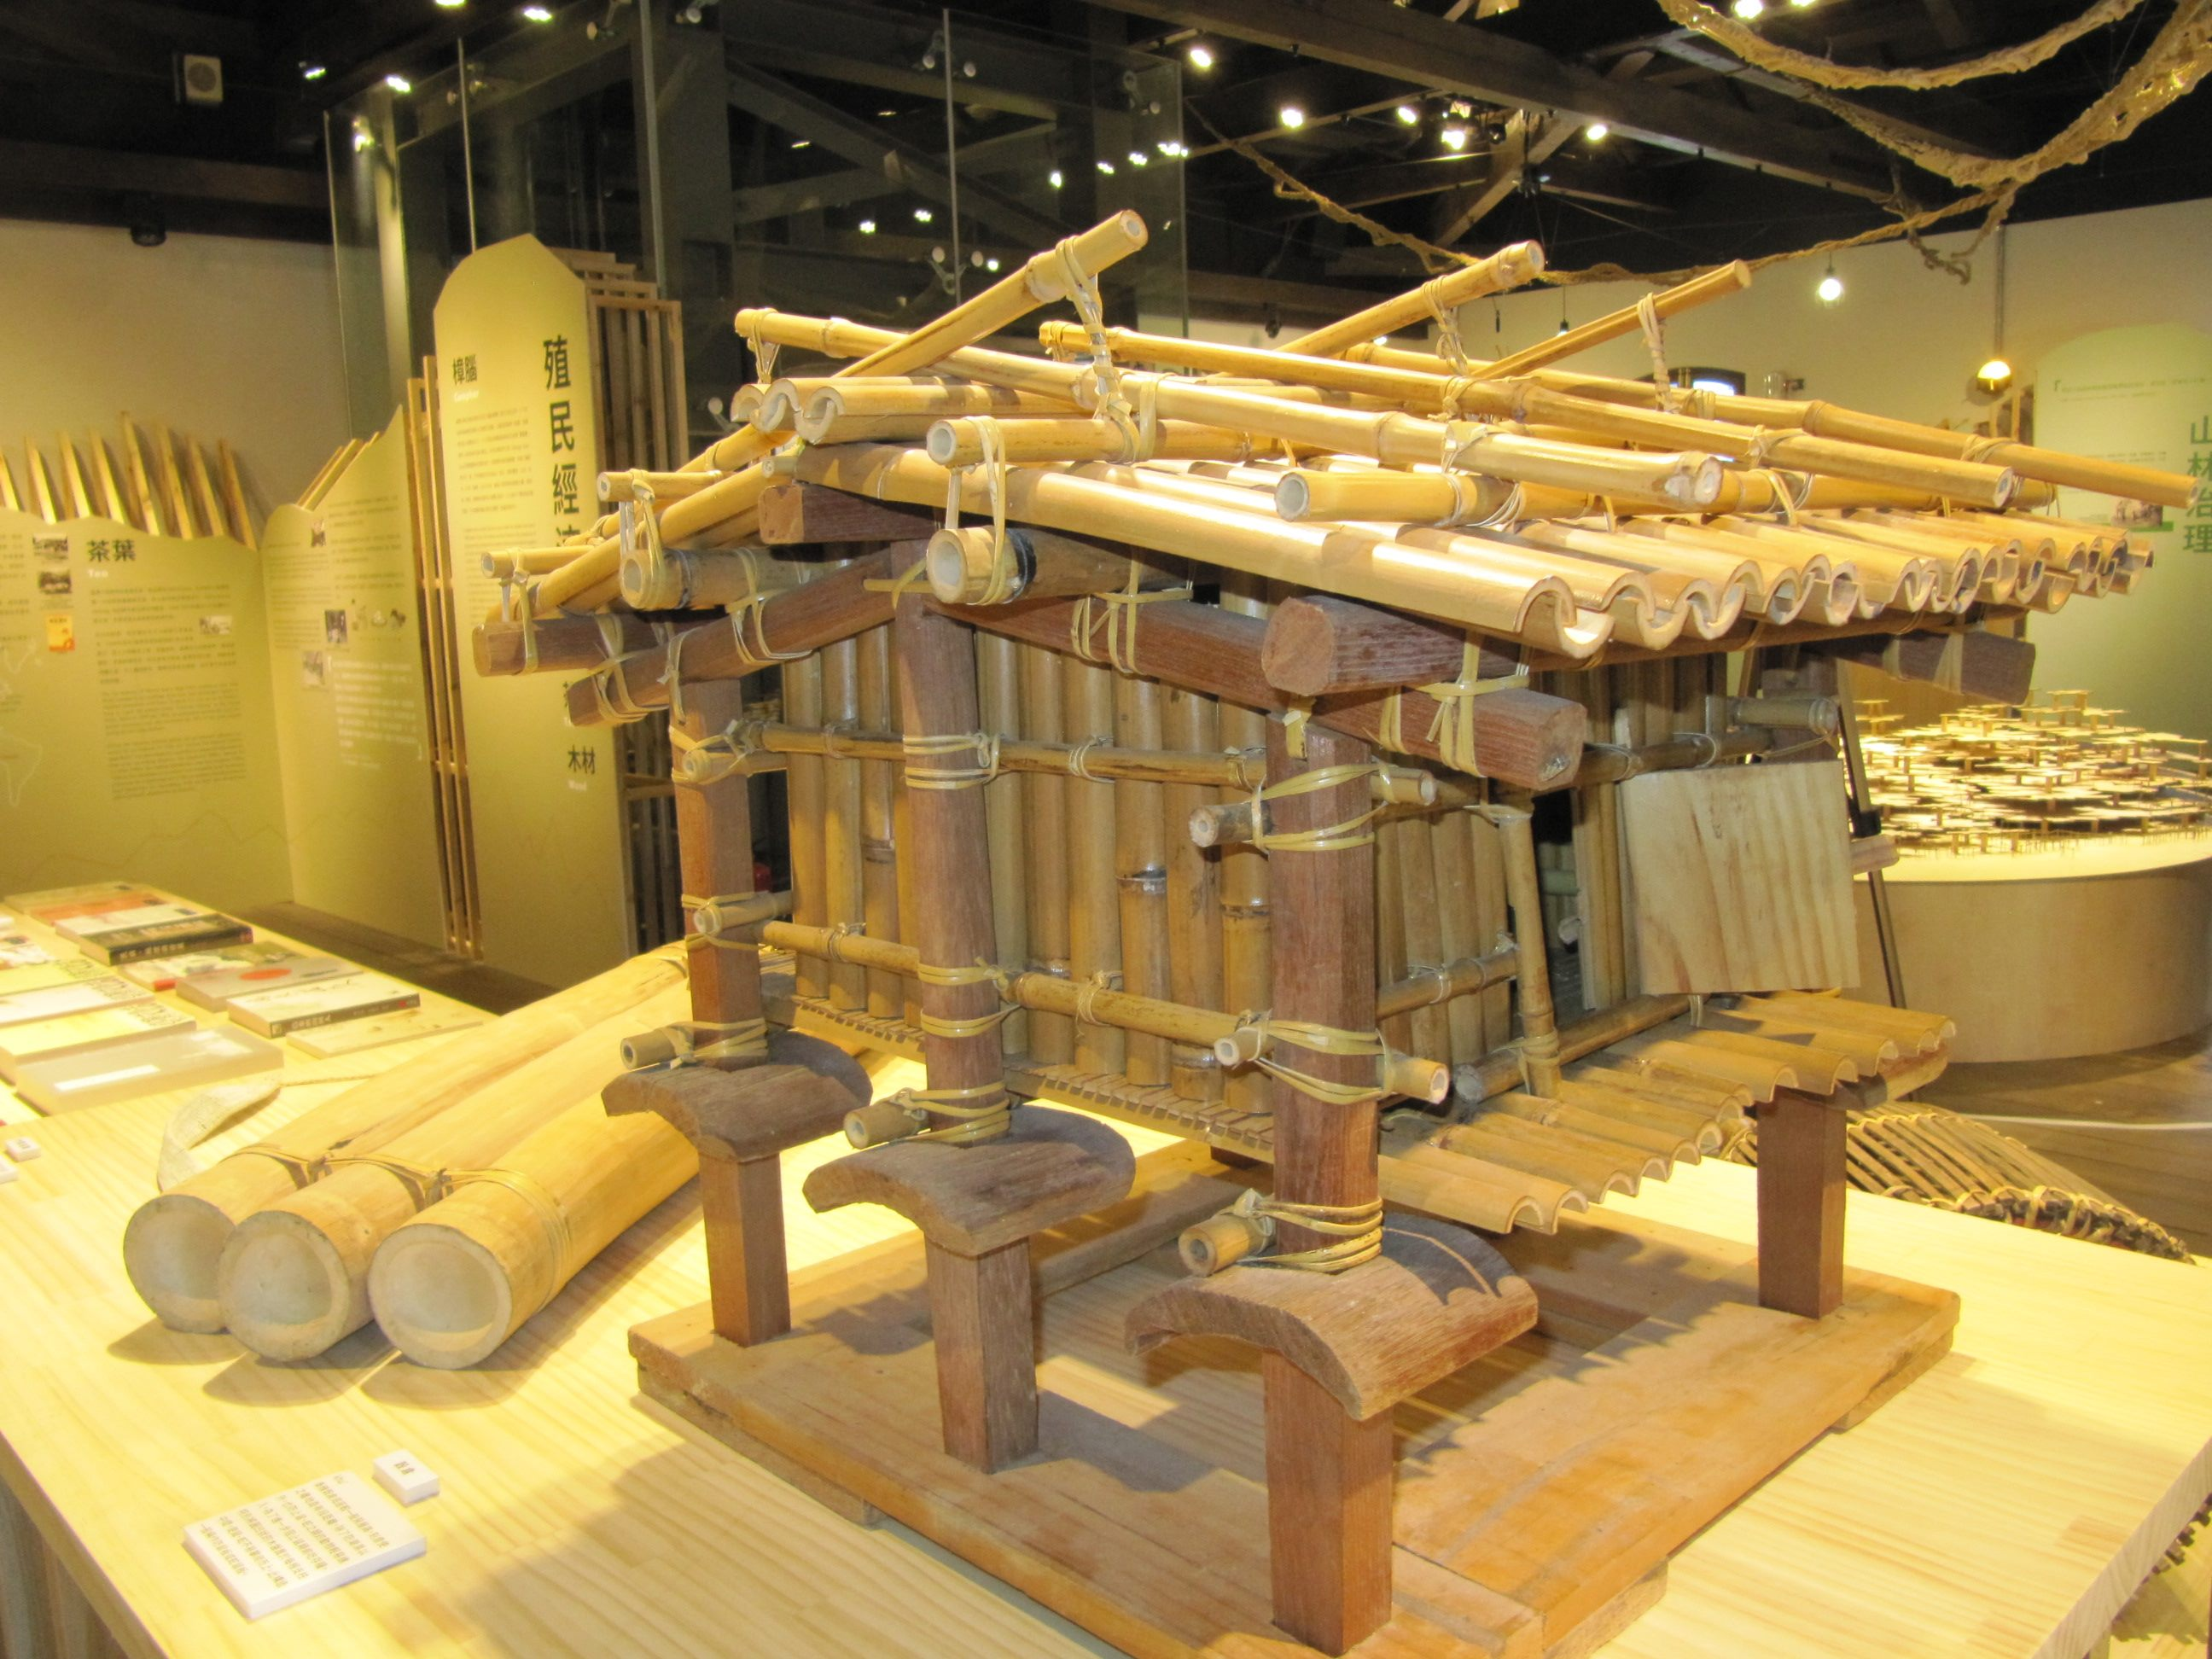 A model of the Atayal traditional barn and three bamboo water bottles